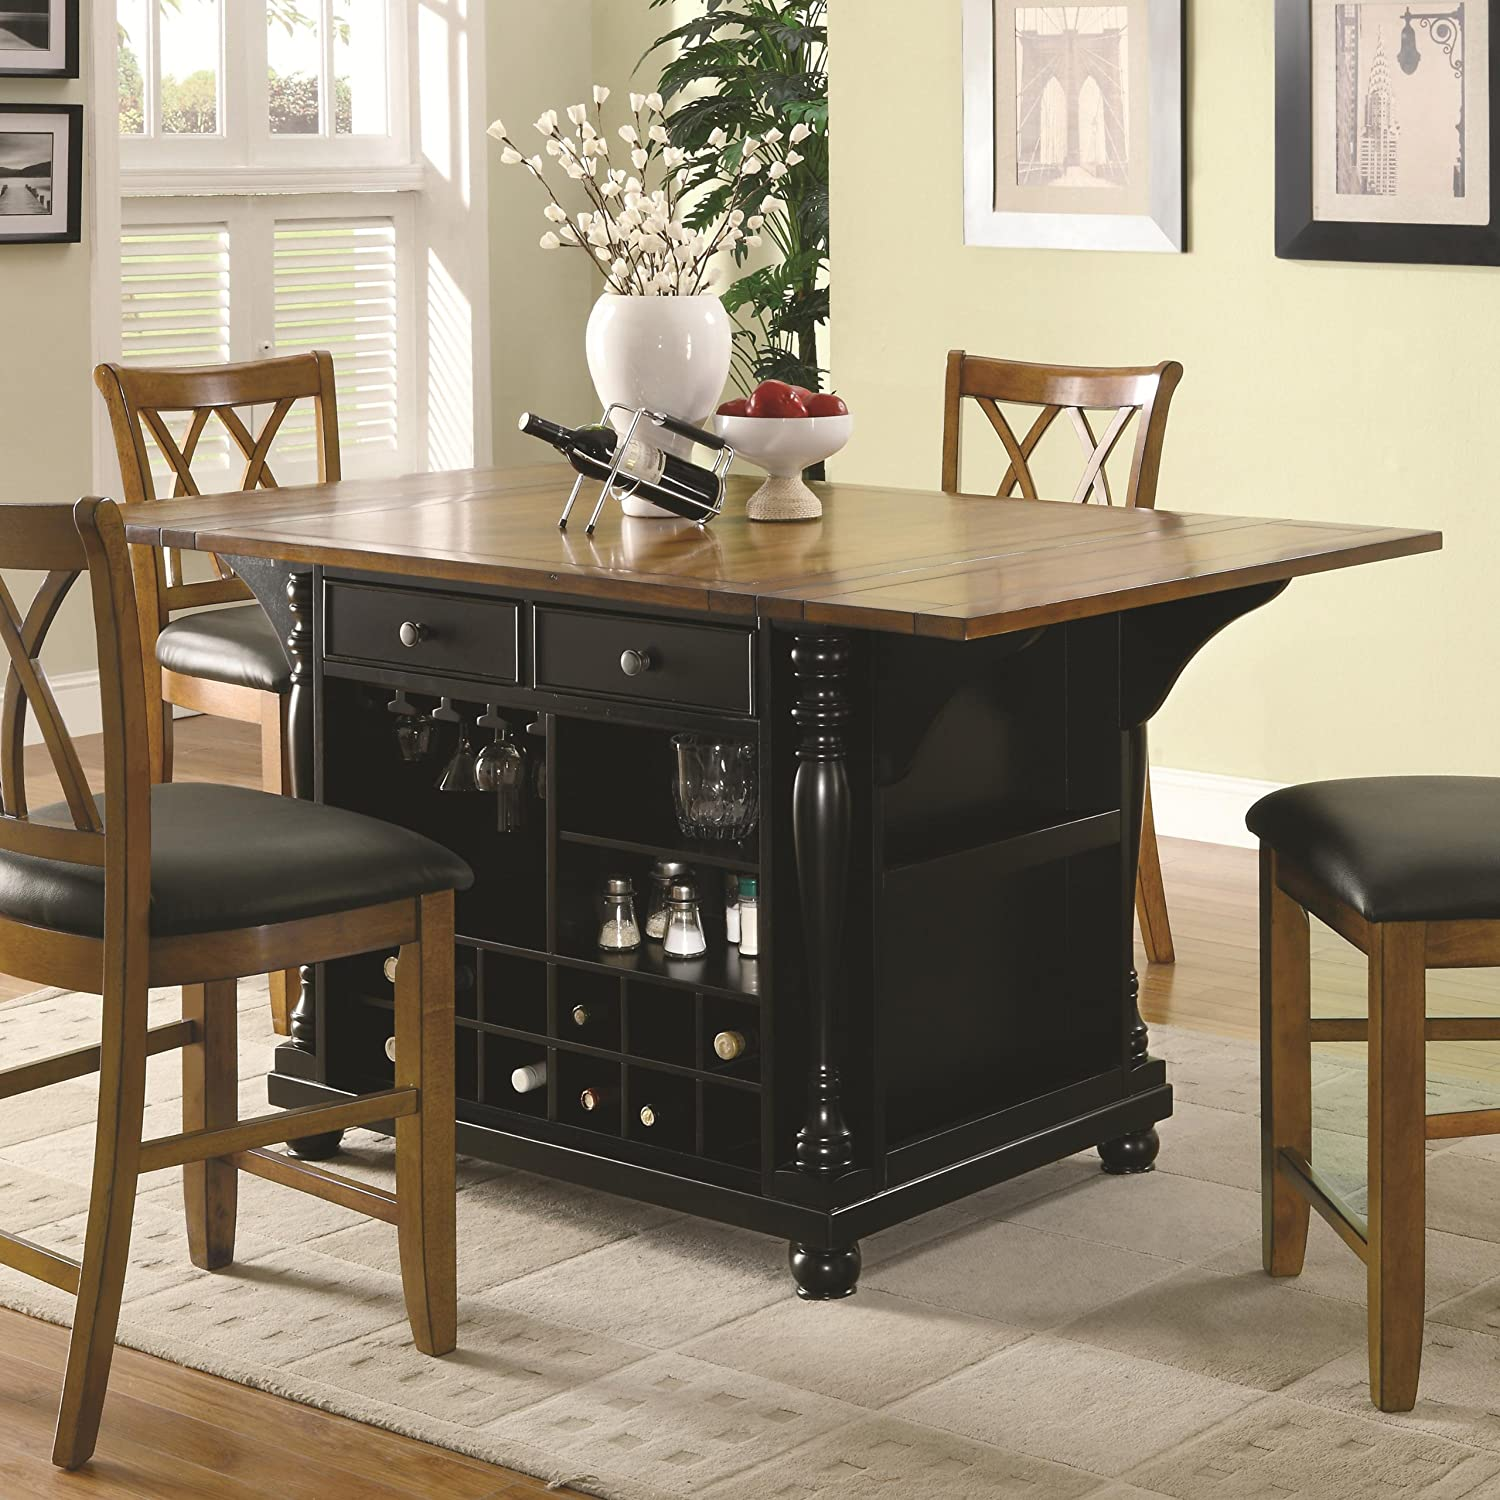 Amazon com coaster 102270 co furniture piece cherry black kitchen dining